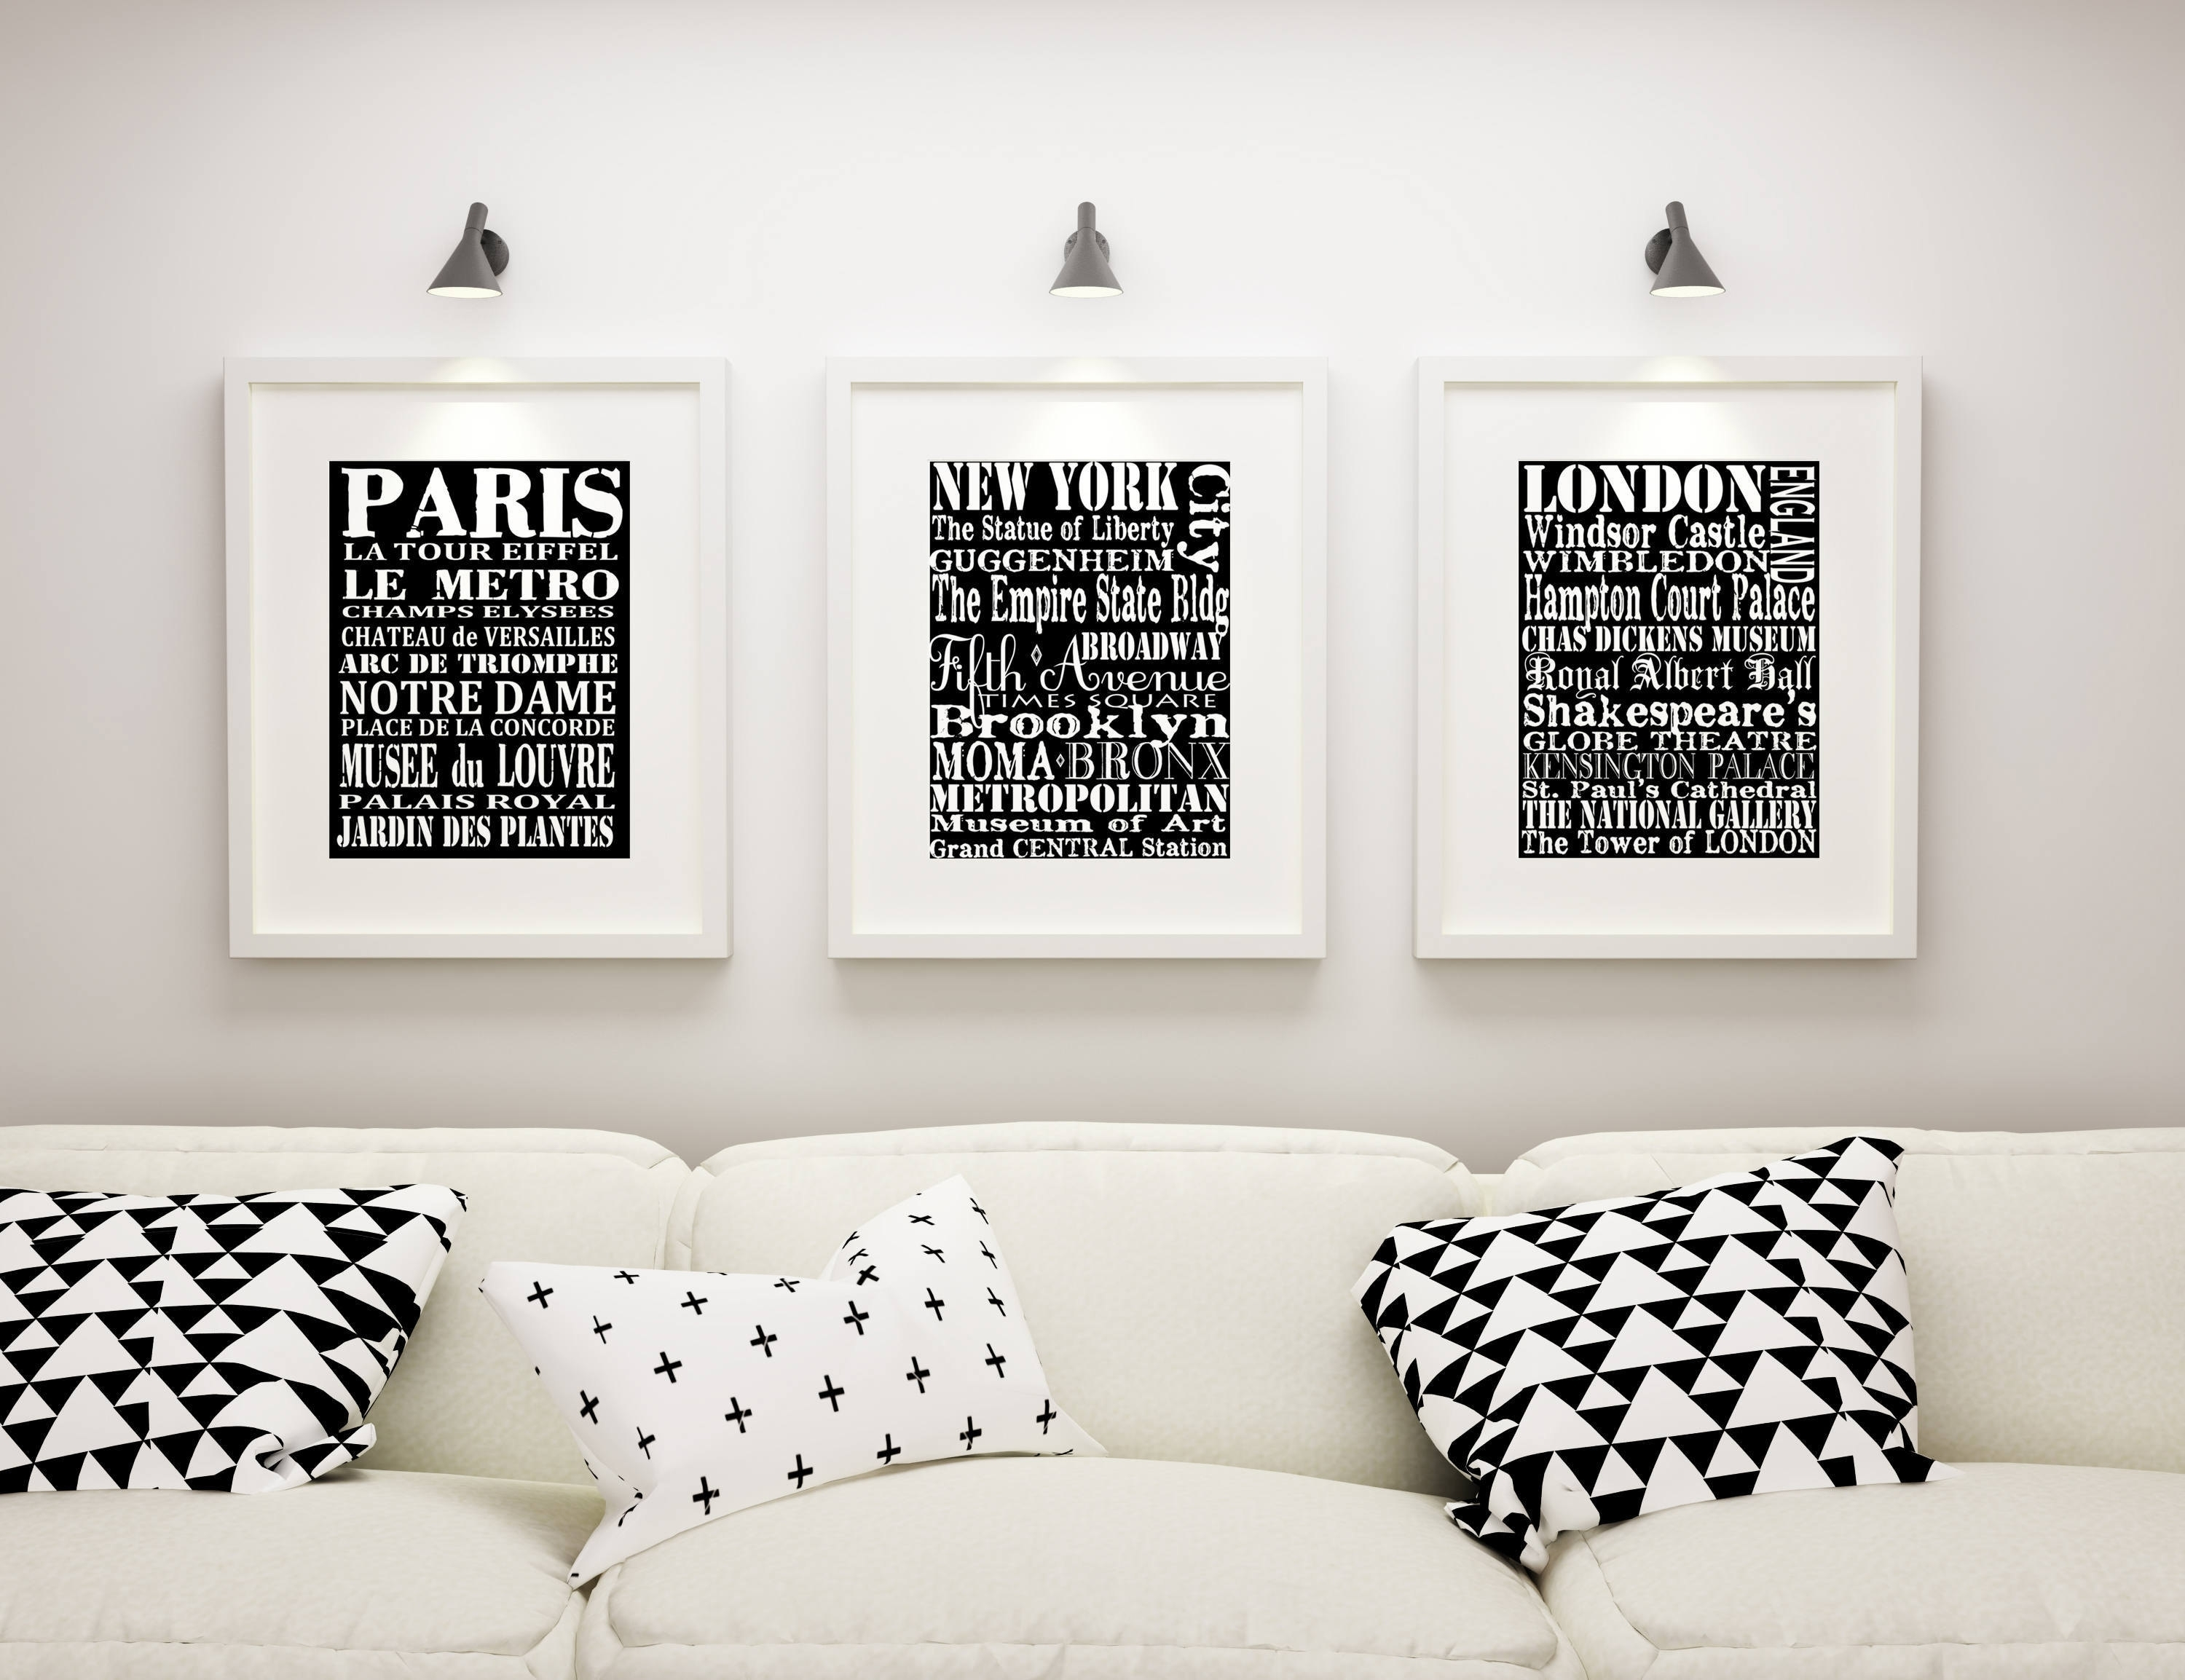 Subway Wall Art, 3 Matted And Framed Subway Art Prints, Paris, New Regarding Most Recent New York Wall Art (Gallery 9 of 20)